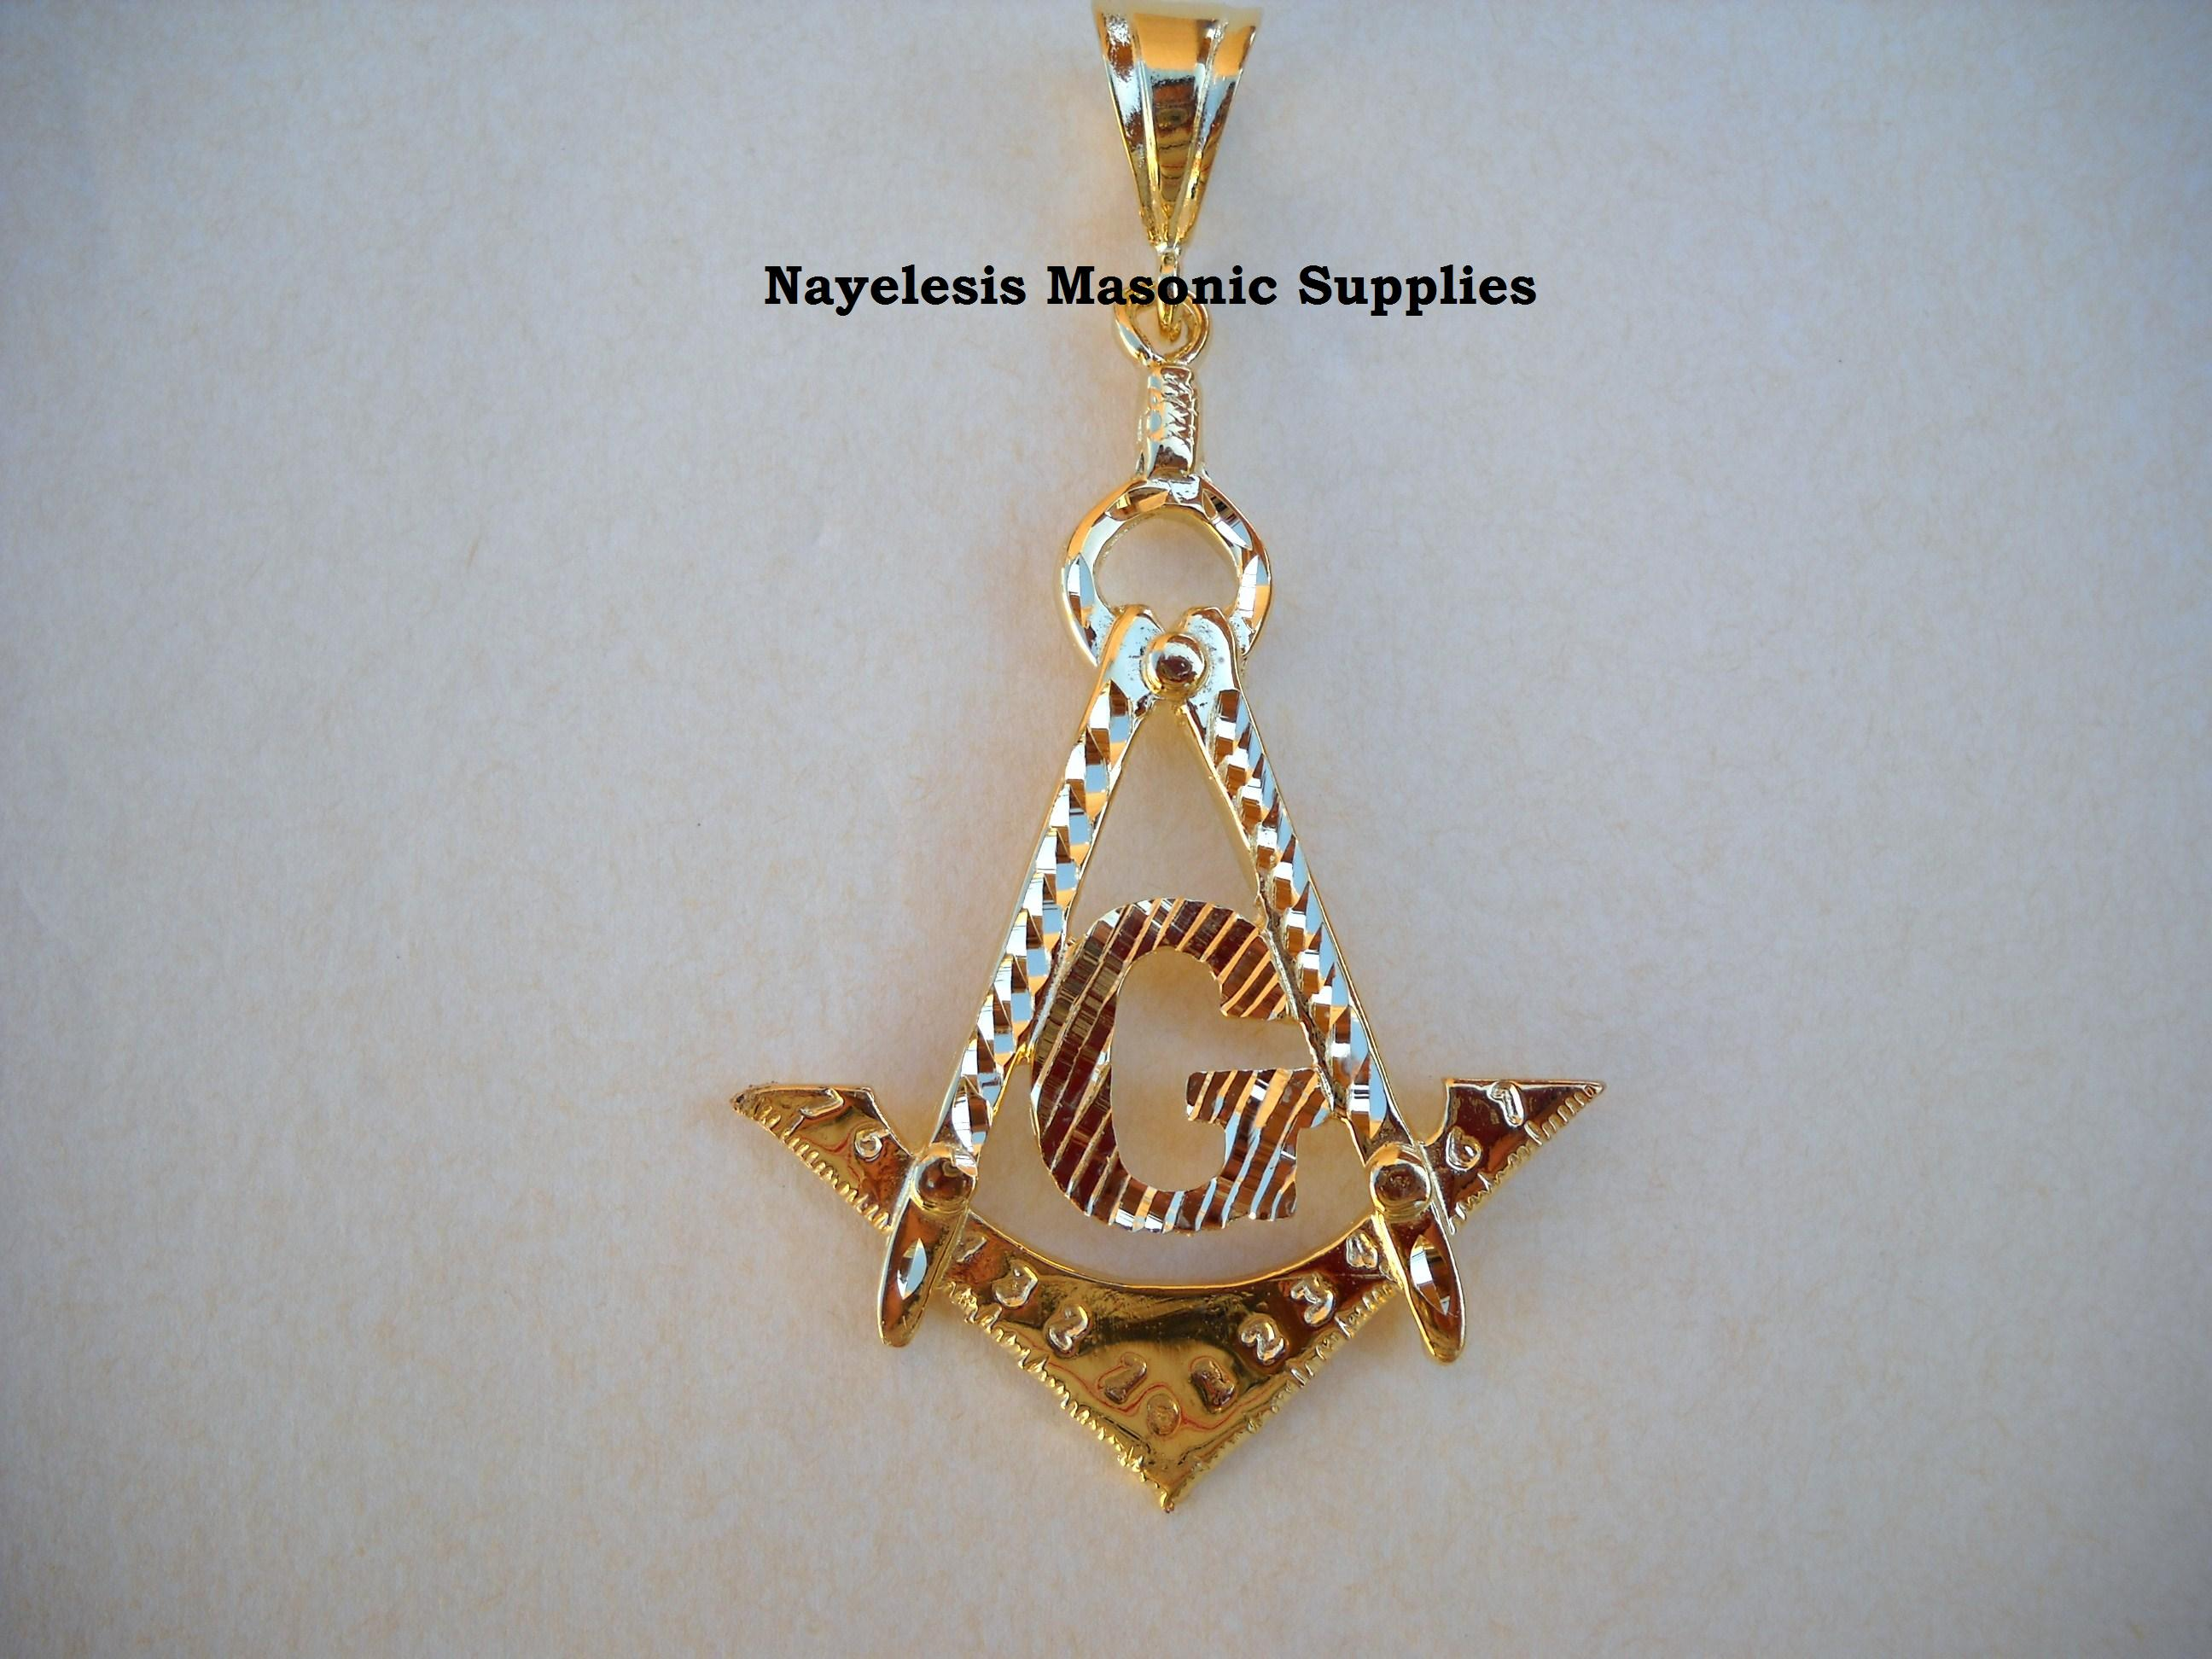 Master Mason Large Pendant Jewel 3.5 inches high by 2 wide